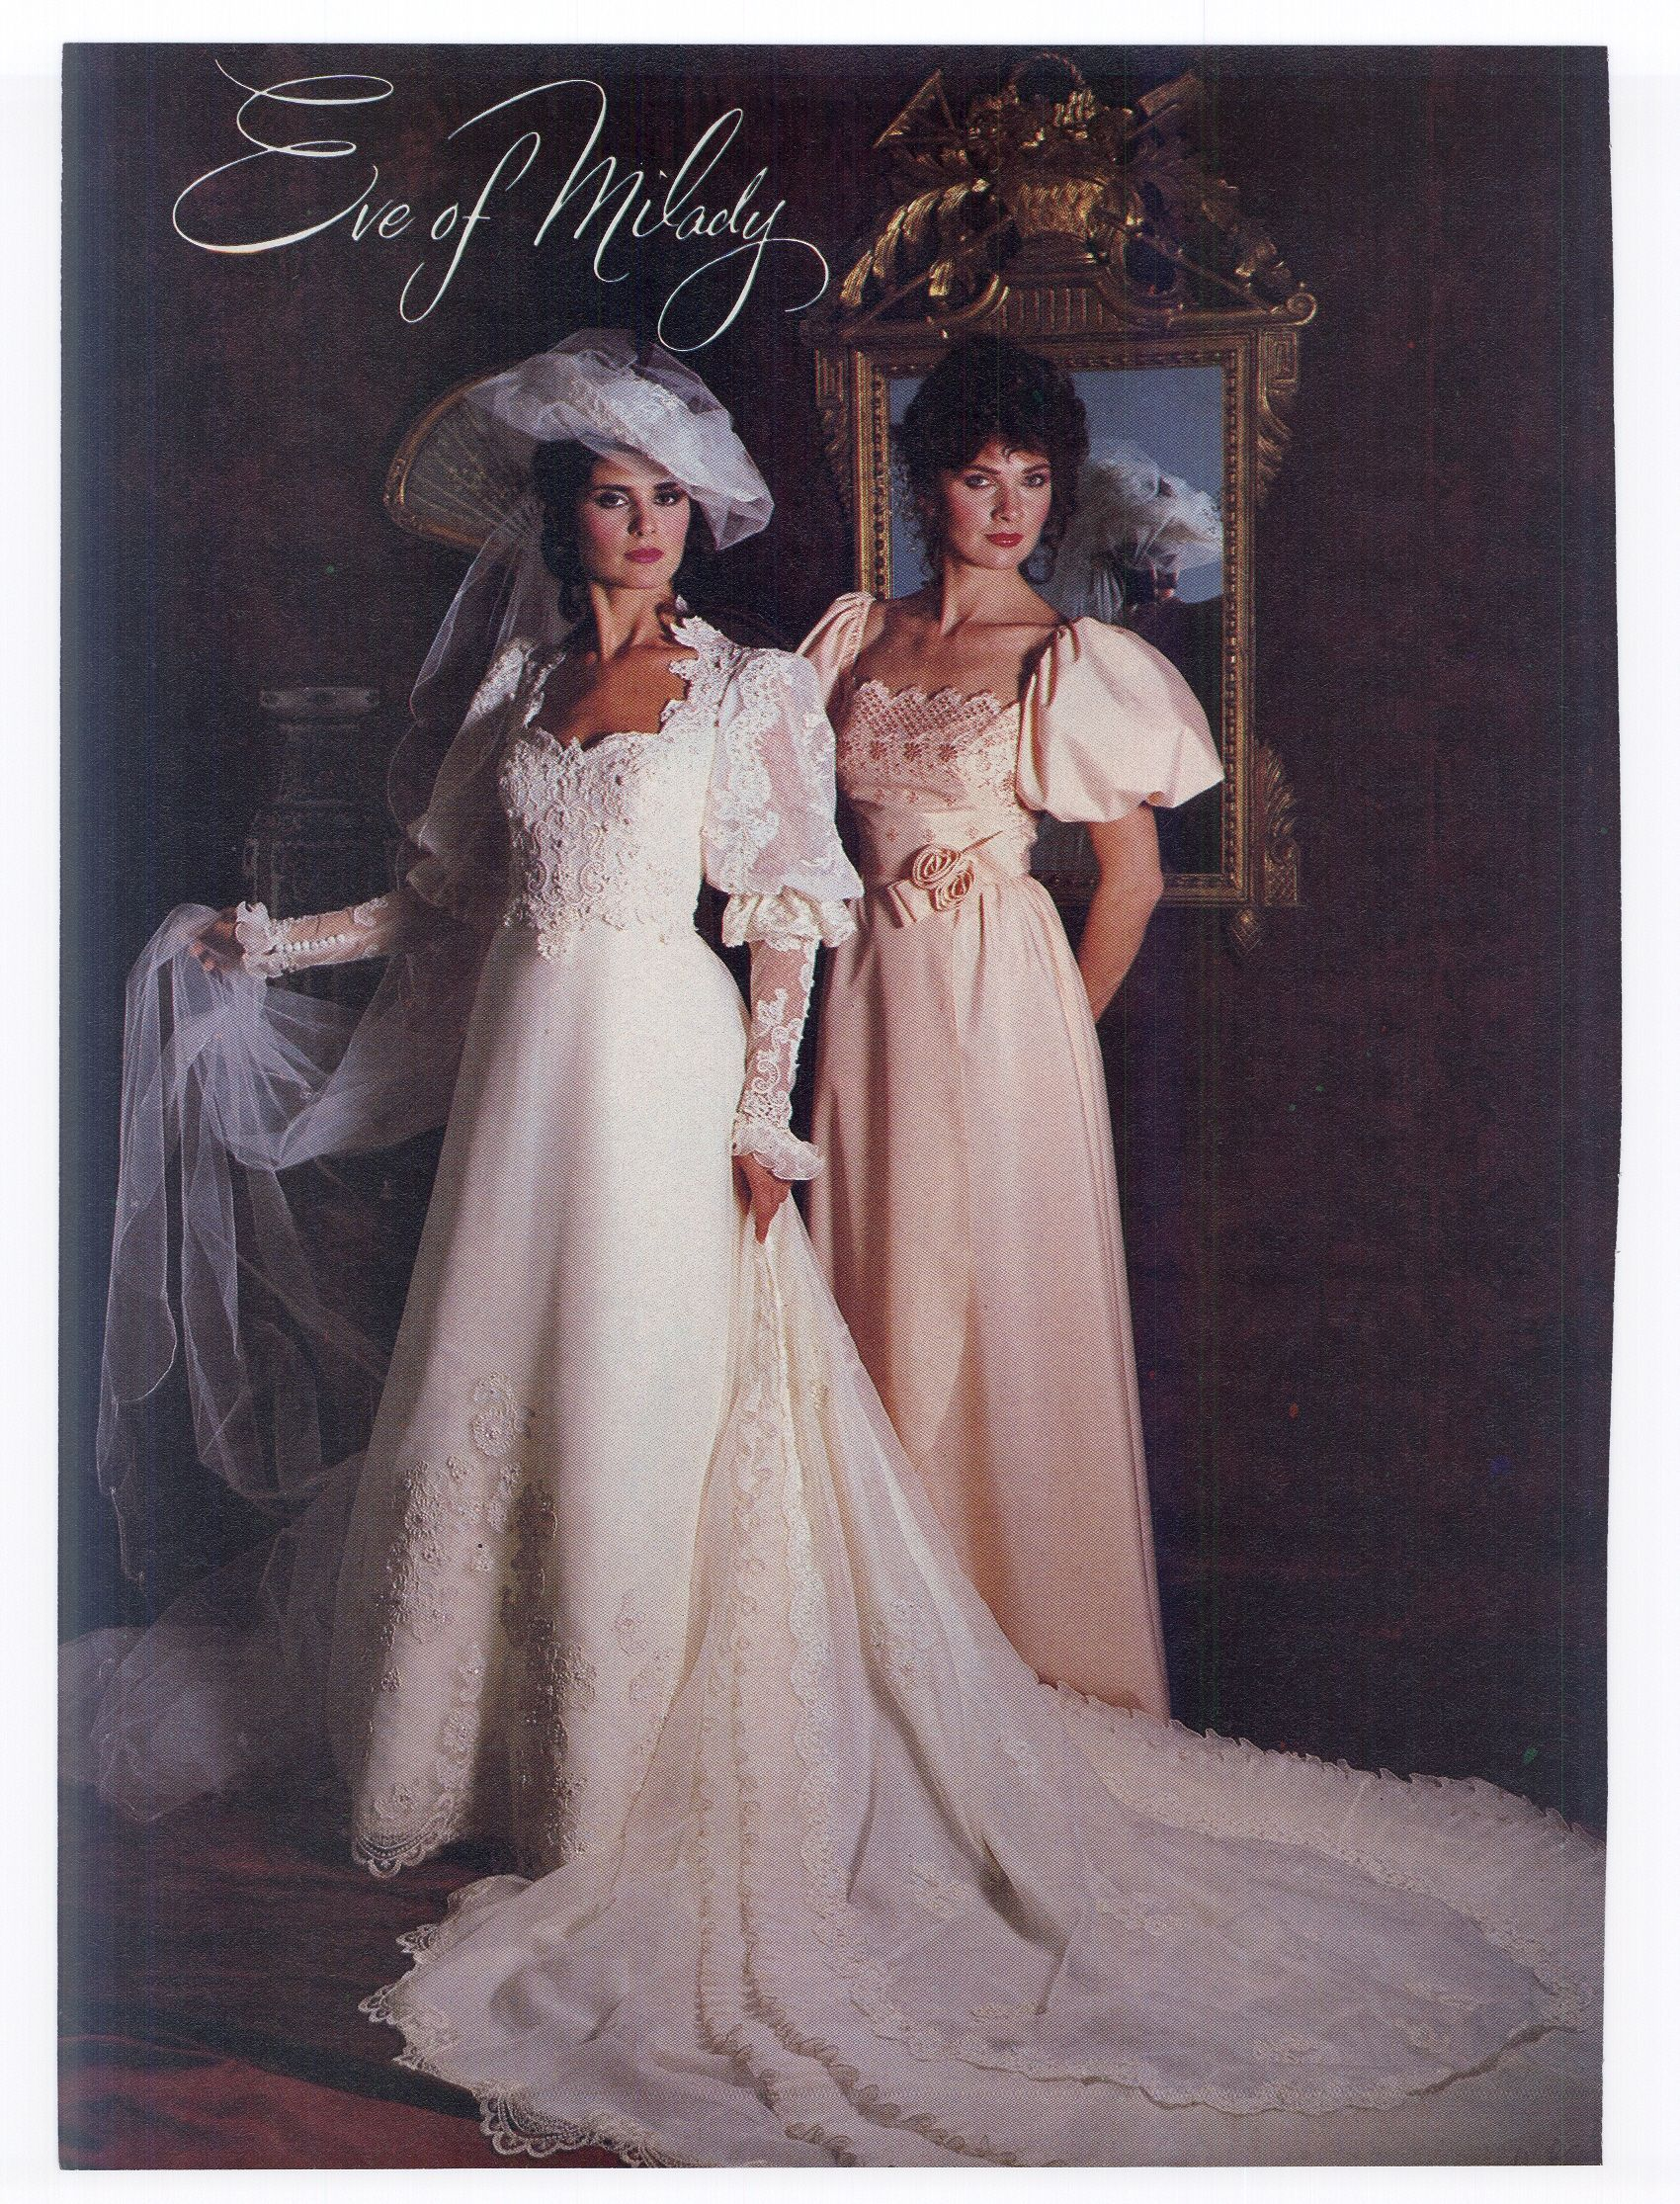 1983 Wedding Gown By Eve Of Milady